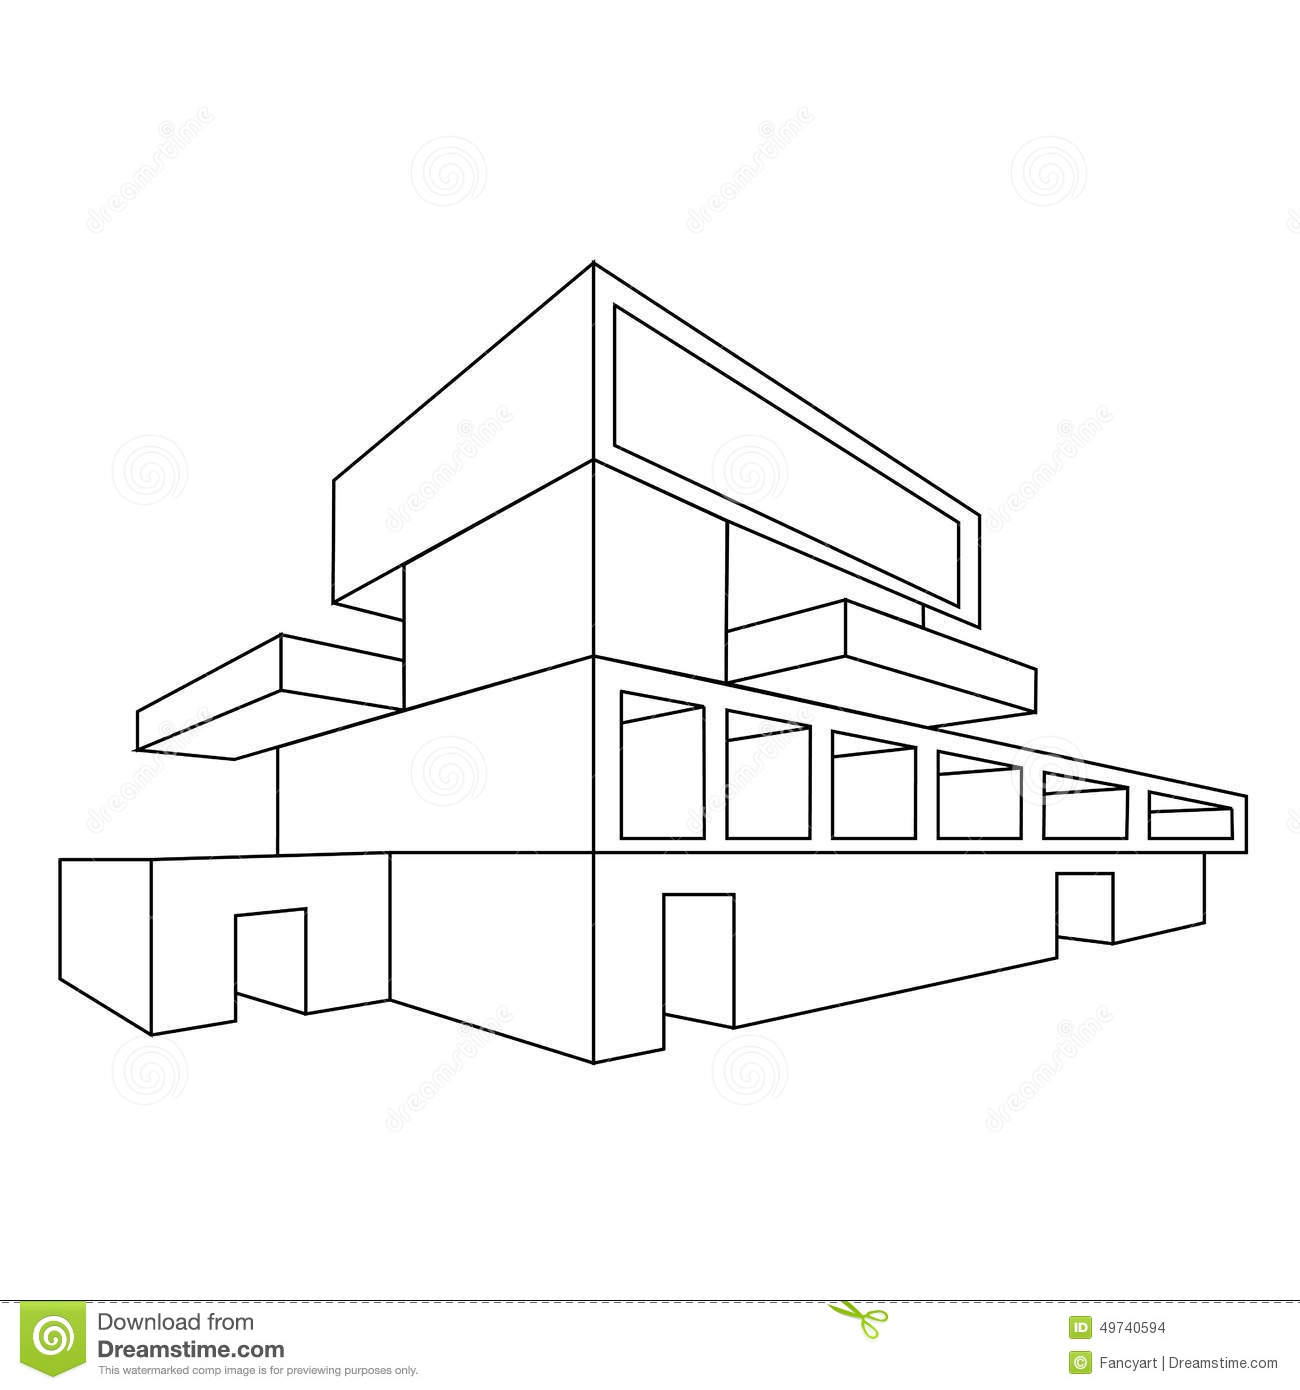 2d Perspective Drawing Of House Stock Vector